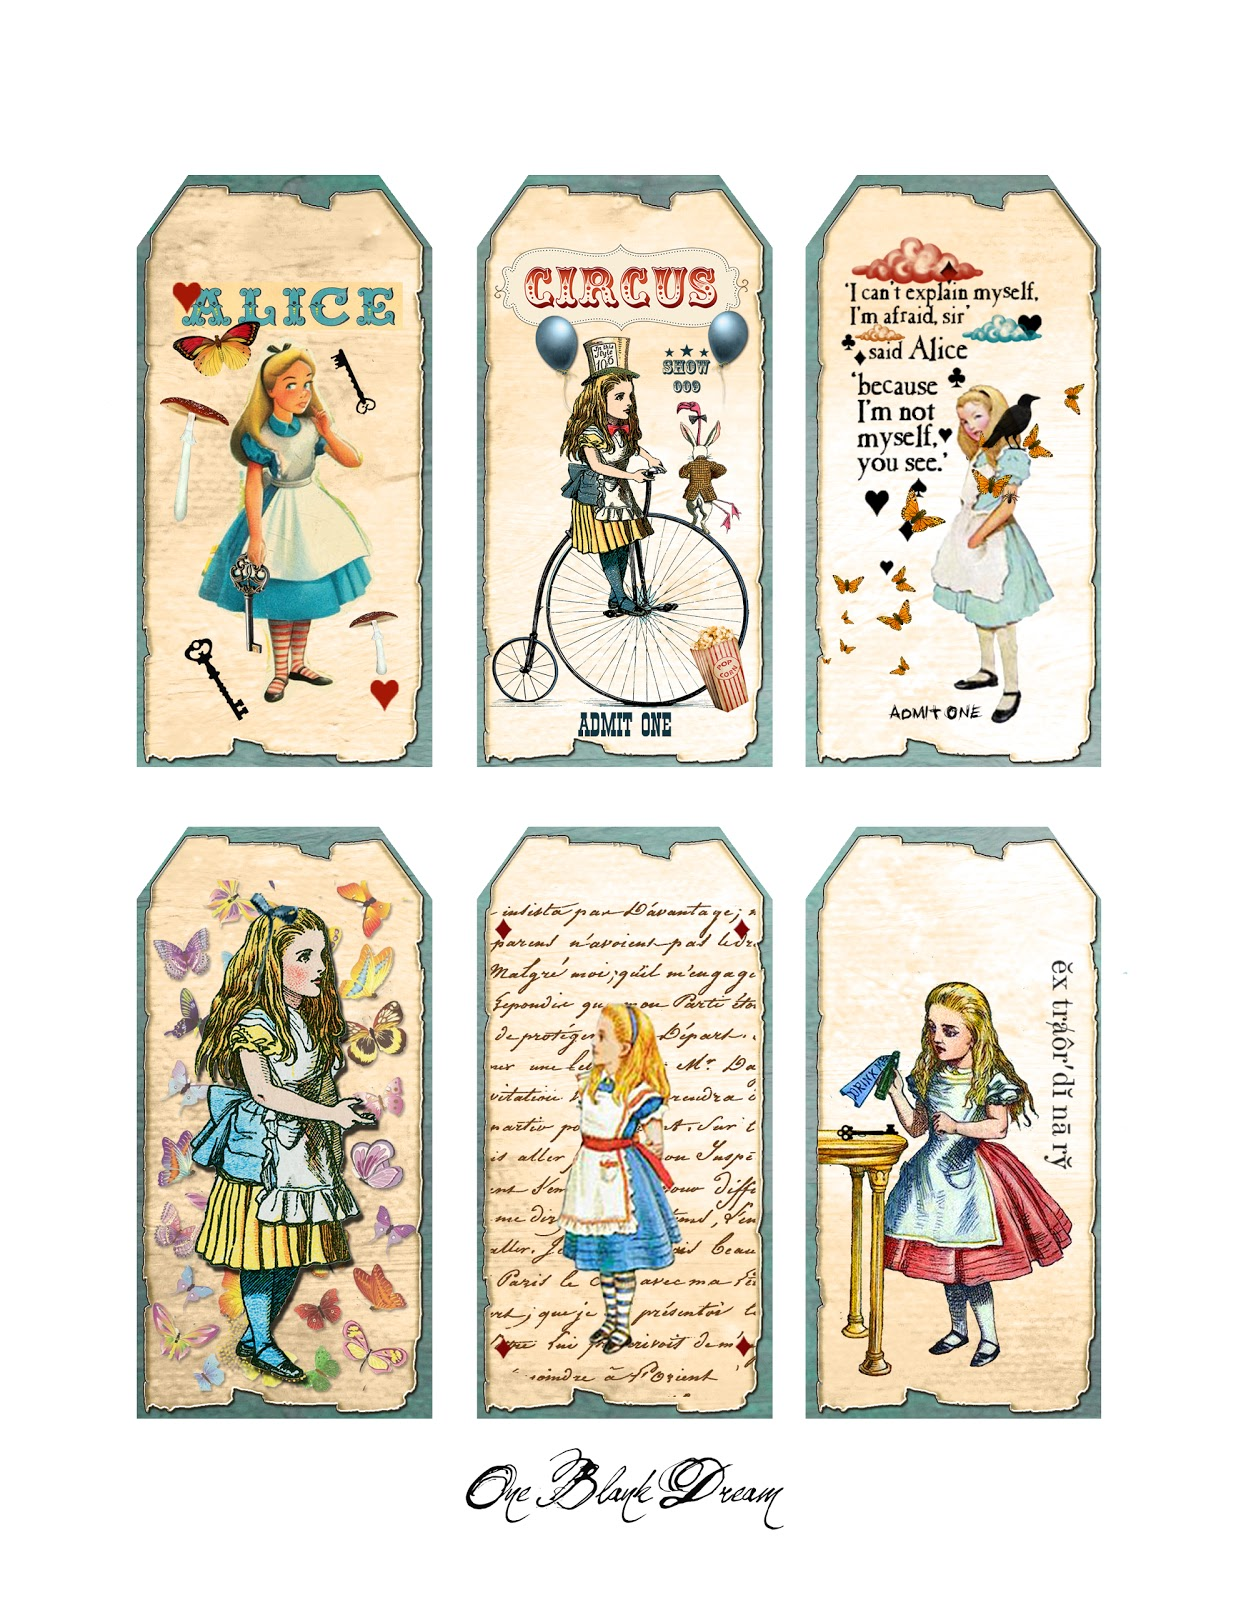 One blank dream september 2013 for Alice in wonderland tags template